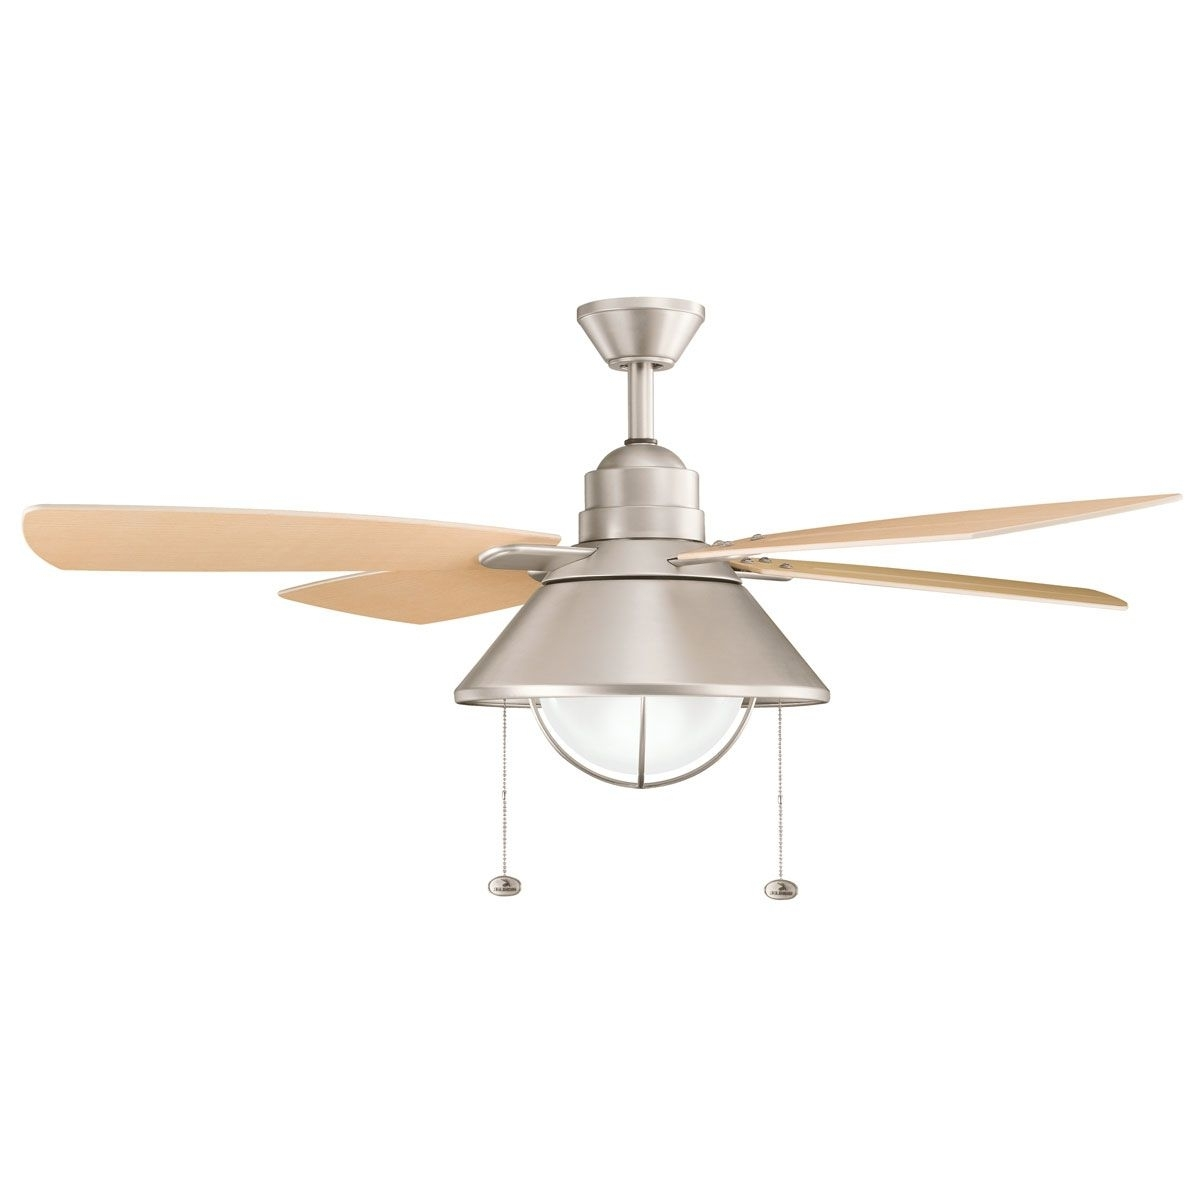 Ideas For The Within Nautical Outdoor Ceiling Fans With Lights (View 9 of 20)